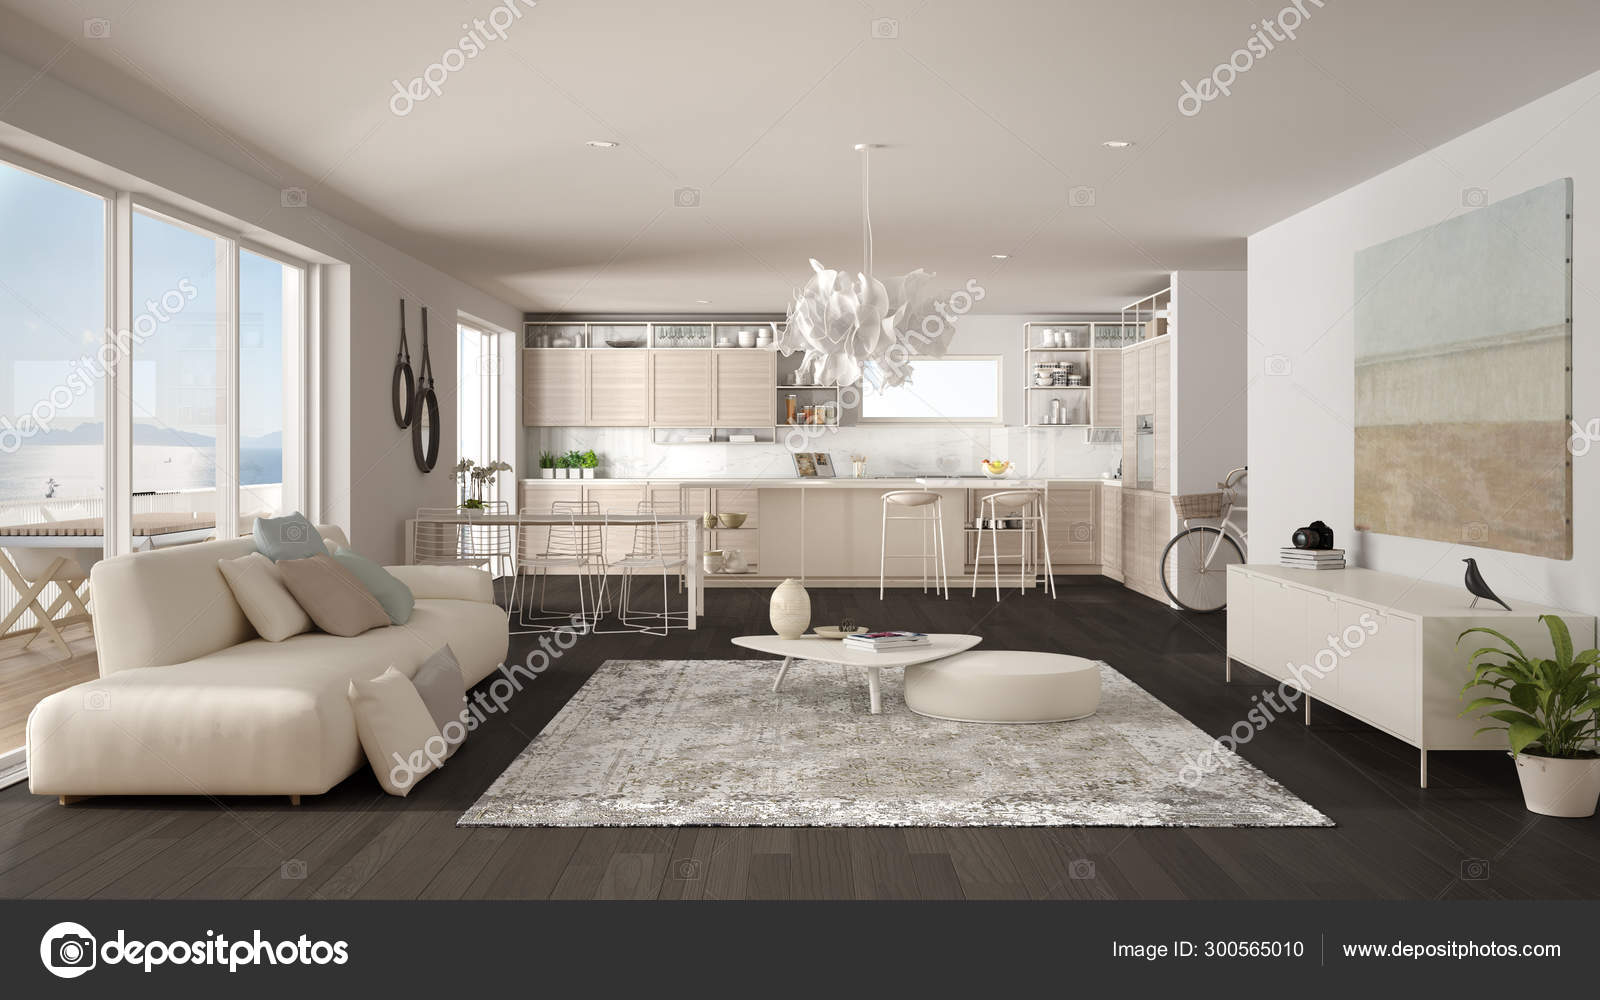 Penthouse Living Room And Kitchen Interior Design Lounge With Sofa And Carpet Dining Table Island With Stools Parquet Modern Minimalist White And Gray Architecture Concept Idea Stock Photo C Archiviz 300565010